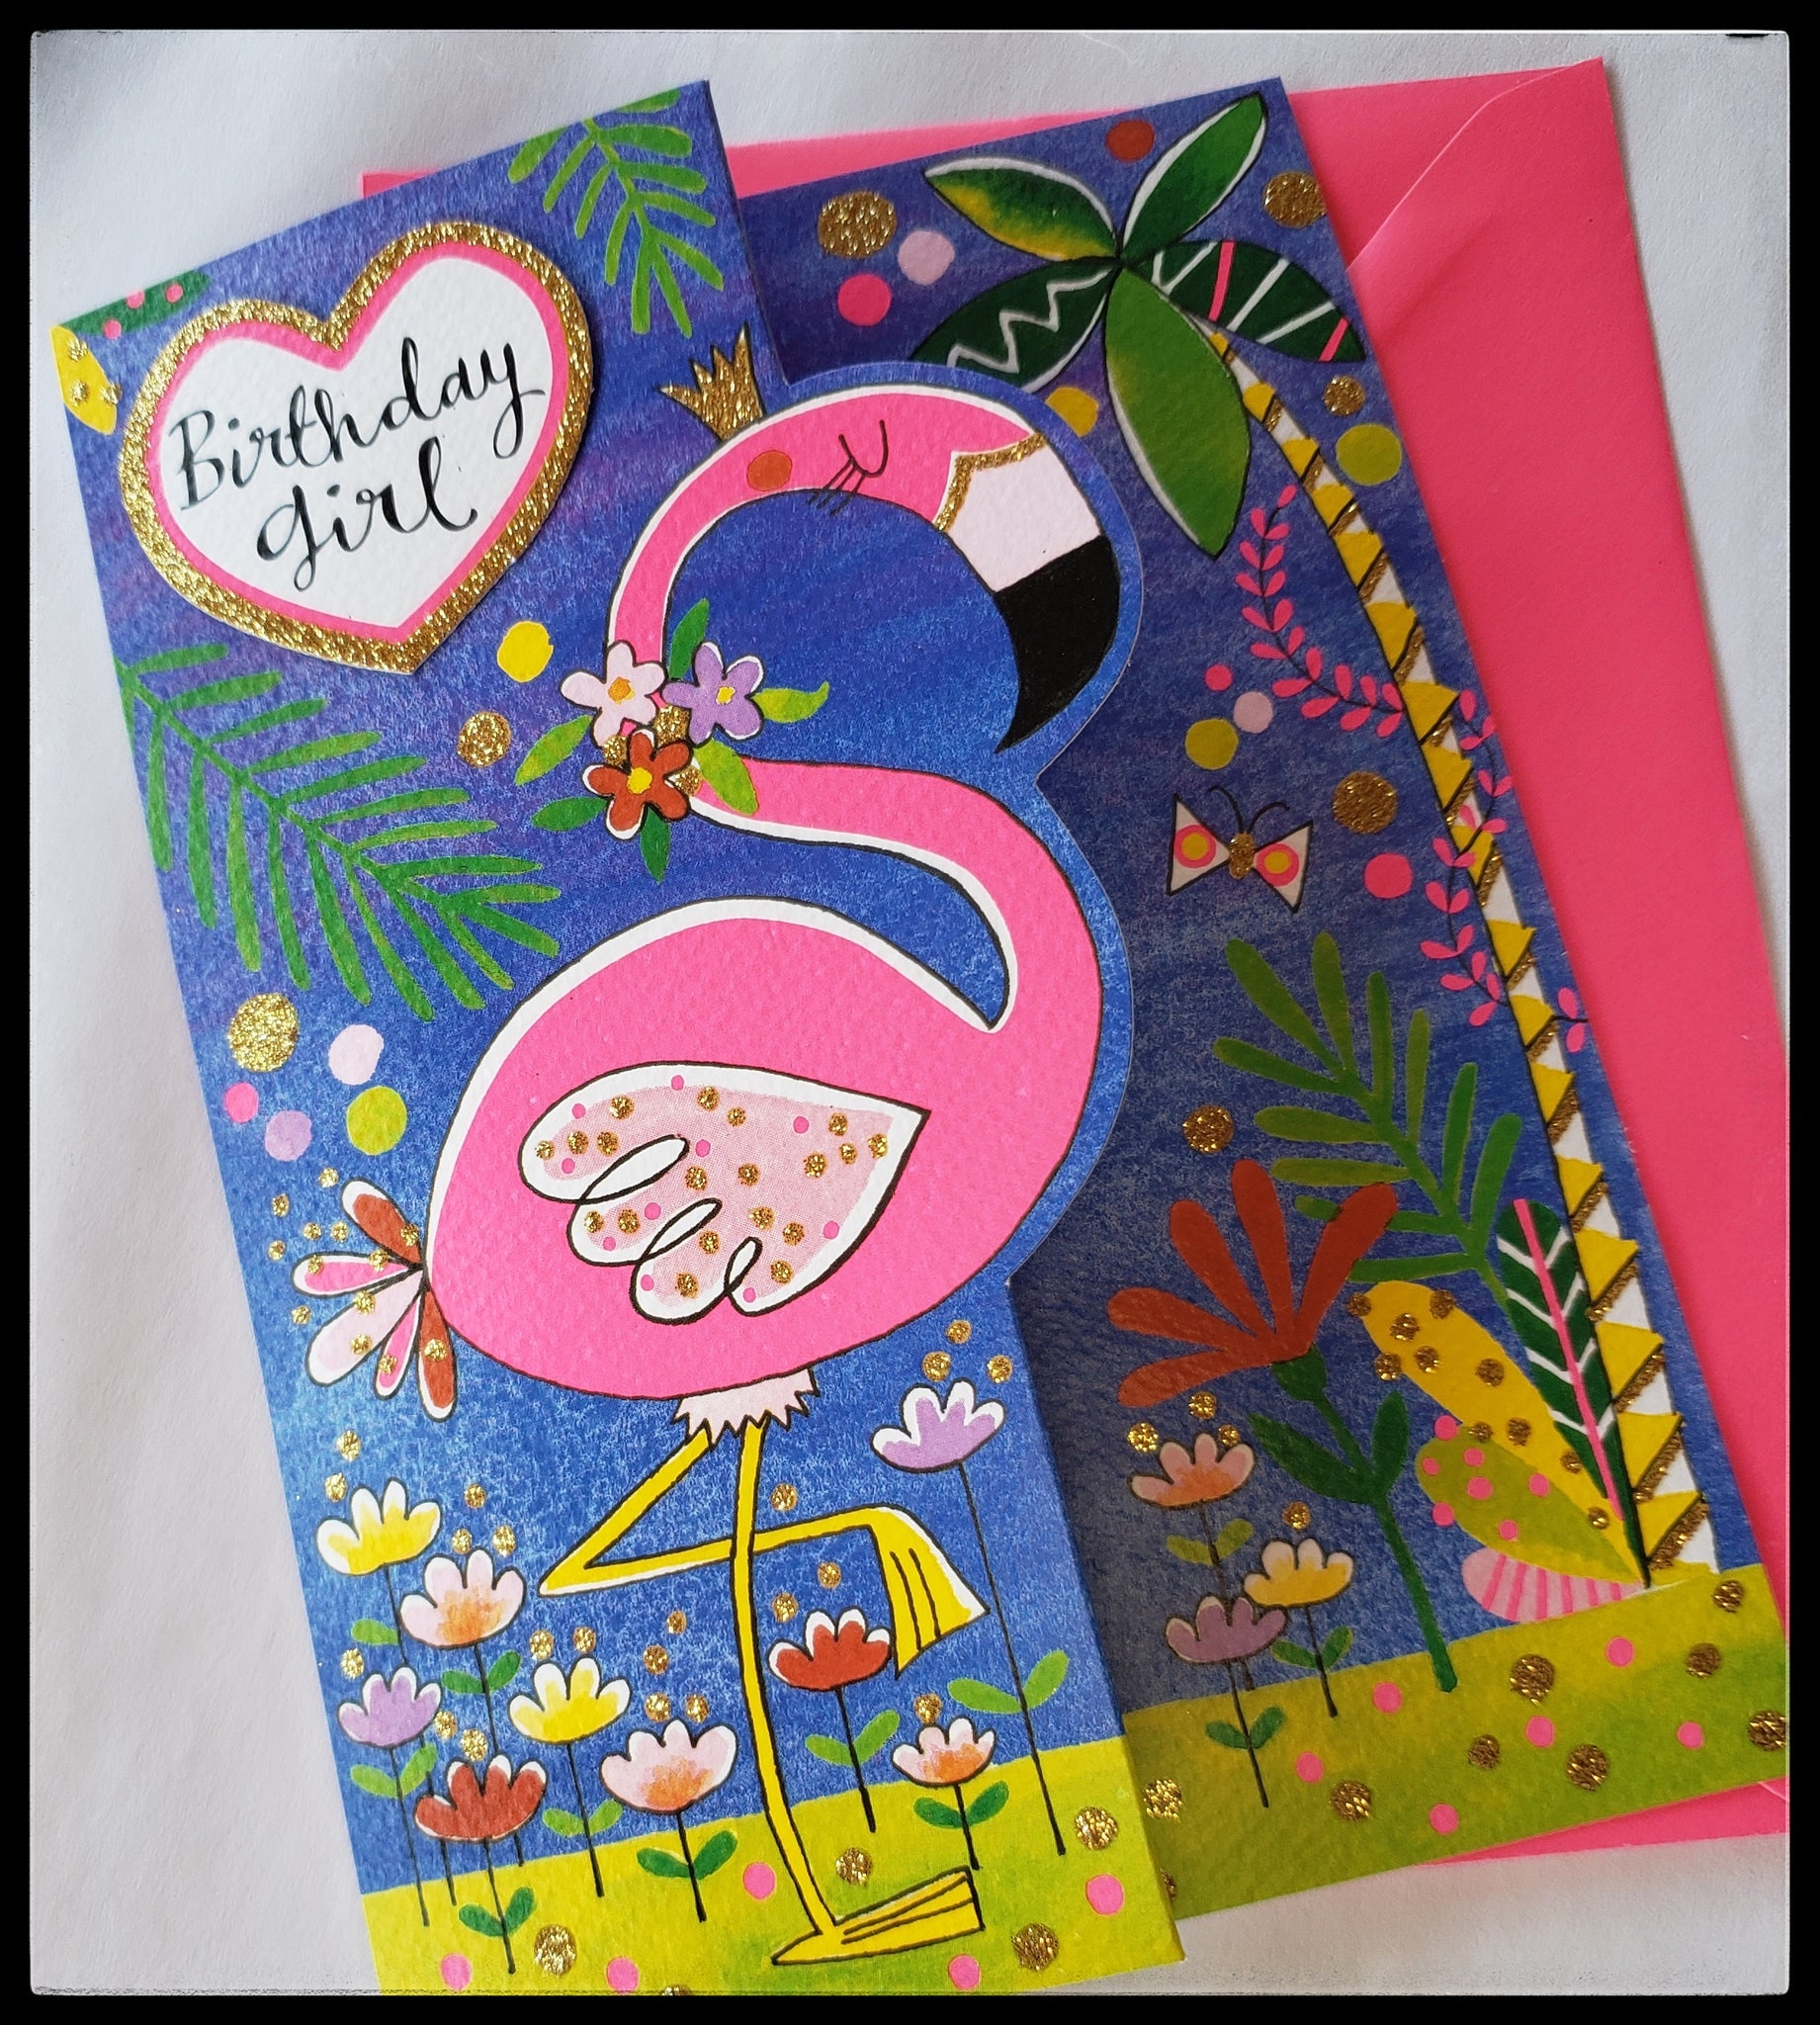 "ADA Flamingo Birthday Girl Greeting Card  BLANK INSIDE  3D Free Standing   Gold glitter accents   Bright color envelope   5.5"" x 7.5"" with envelope     Birthday Girt Cards, The Gilded Page Santa Fe, New Mexico Online"